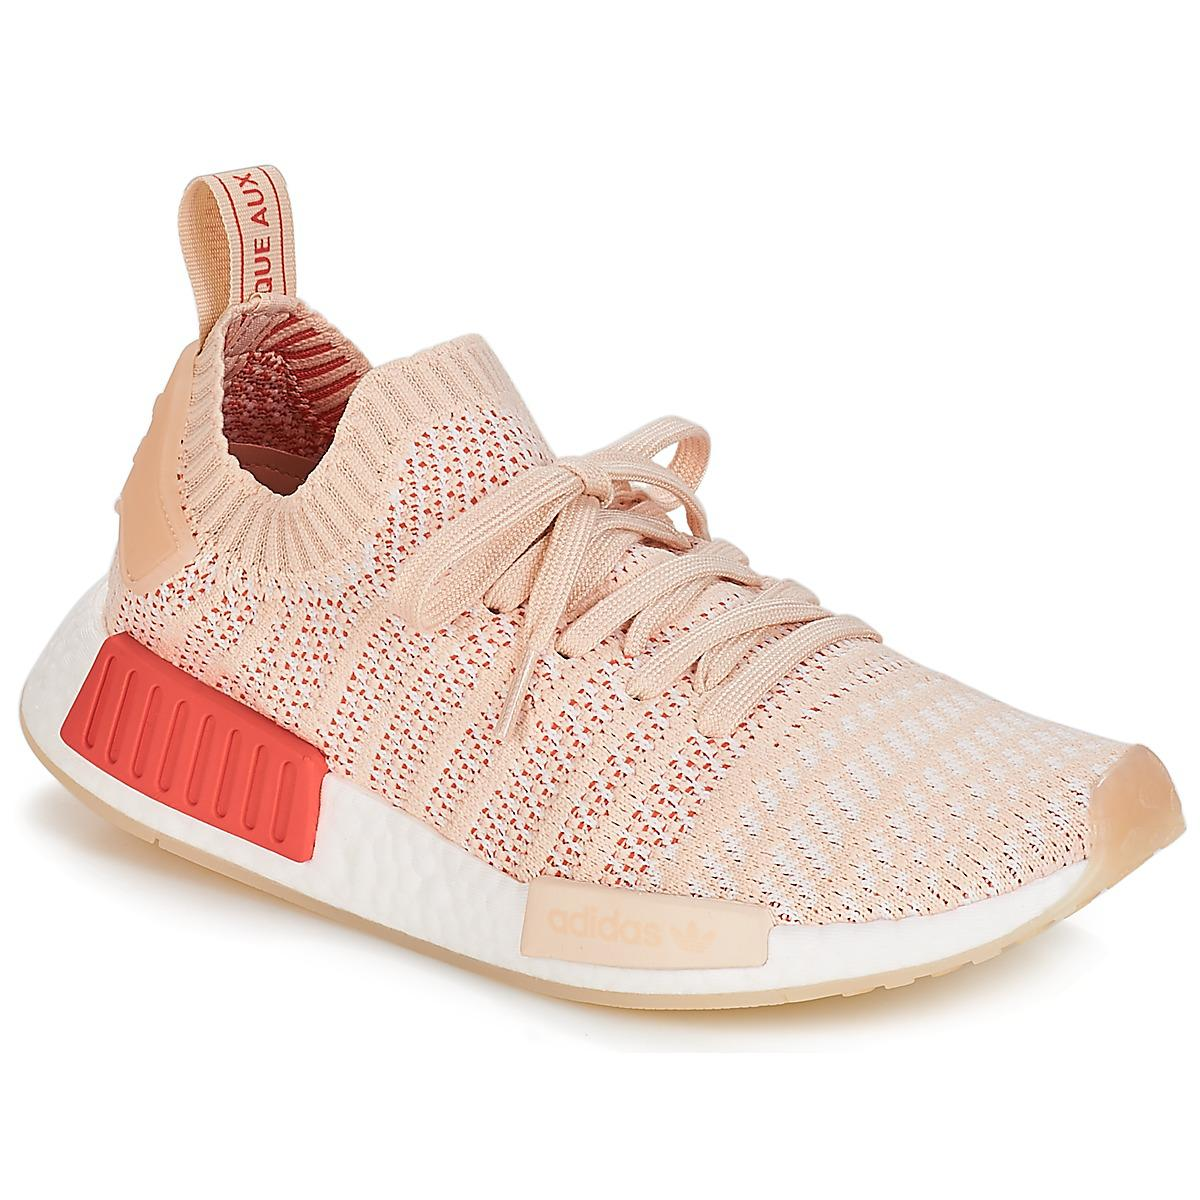 2e4ea8947760a adidas Nmd R1 Stlt Pk W Women s Shoes (trainers) In Multicolour in ...